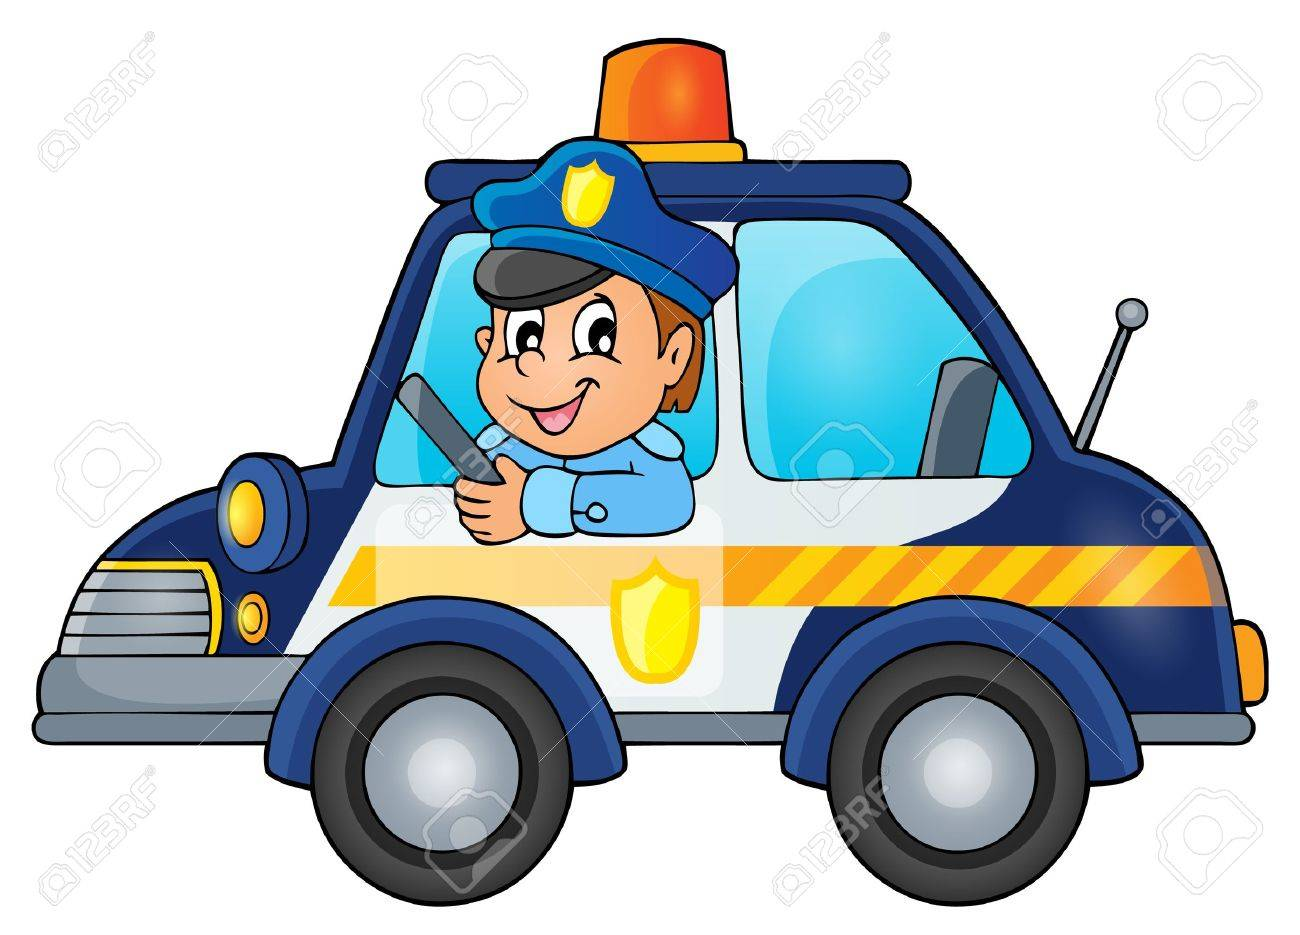 9 936 police car cliparts stock vector and royalty free police car rh 123rf com uk police car clip art police car clipart png